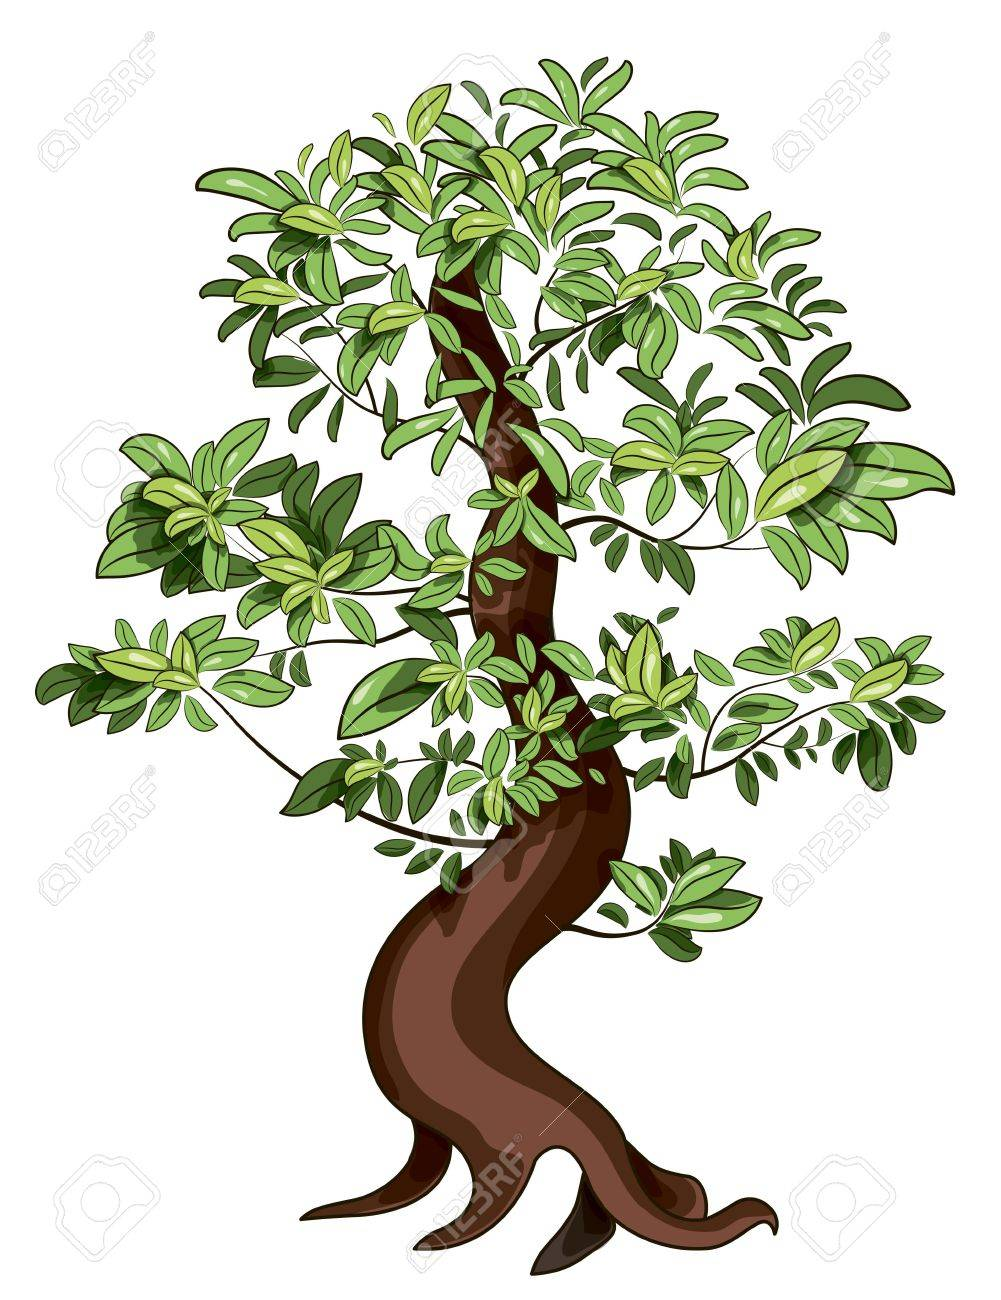 Illustration Of Japan Decorative Ficus Bonsai Royalty Free ...